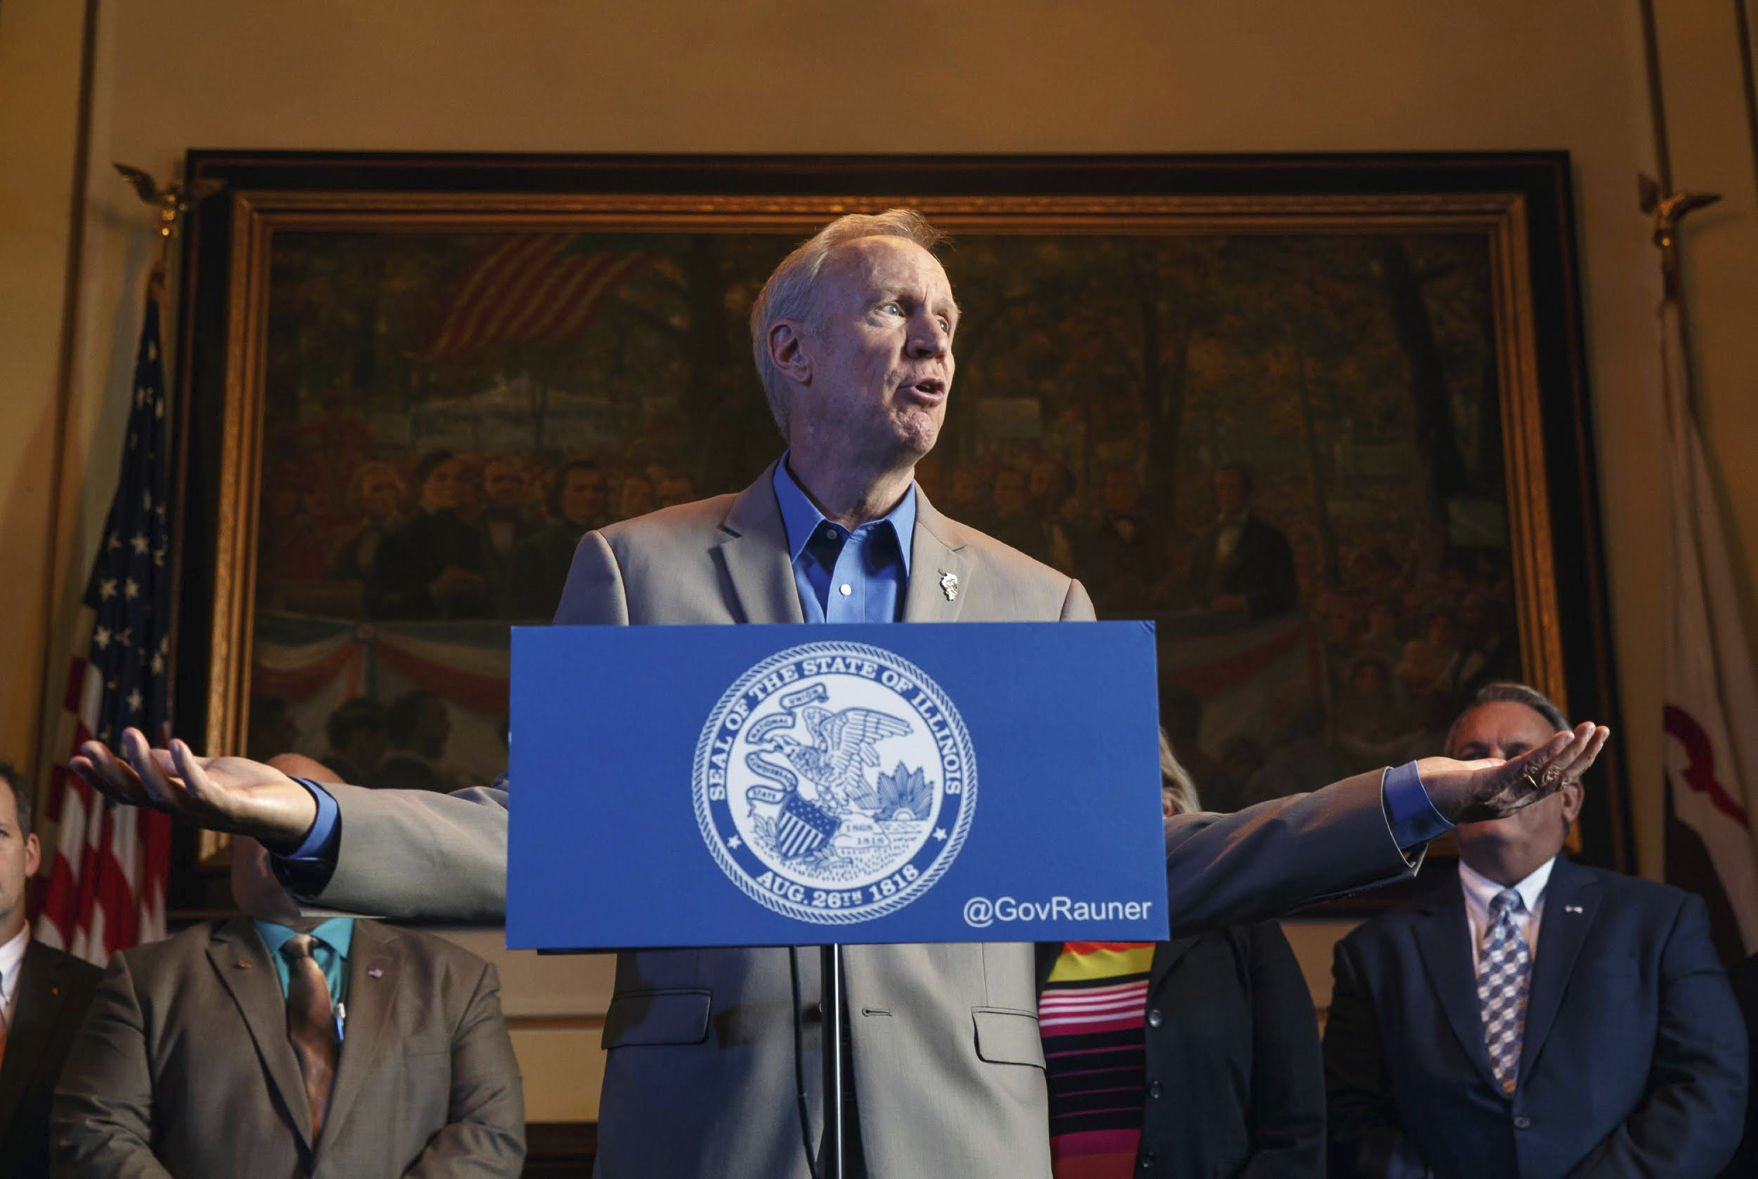 Next move is Rauner's after Senate sends him school funding bill